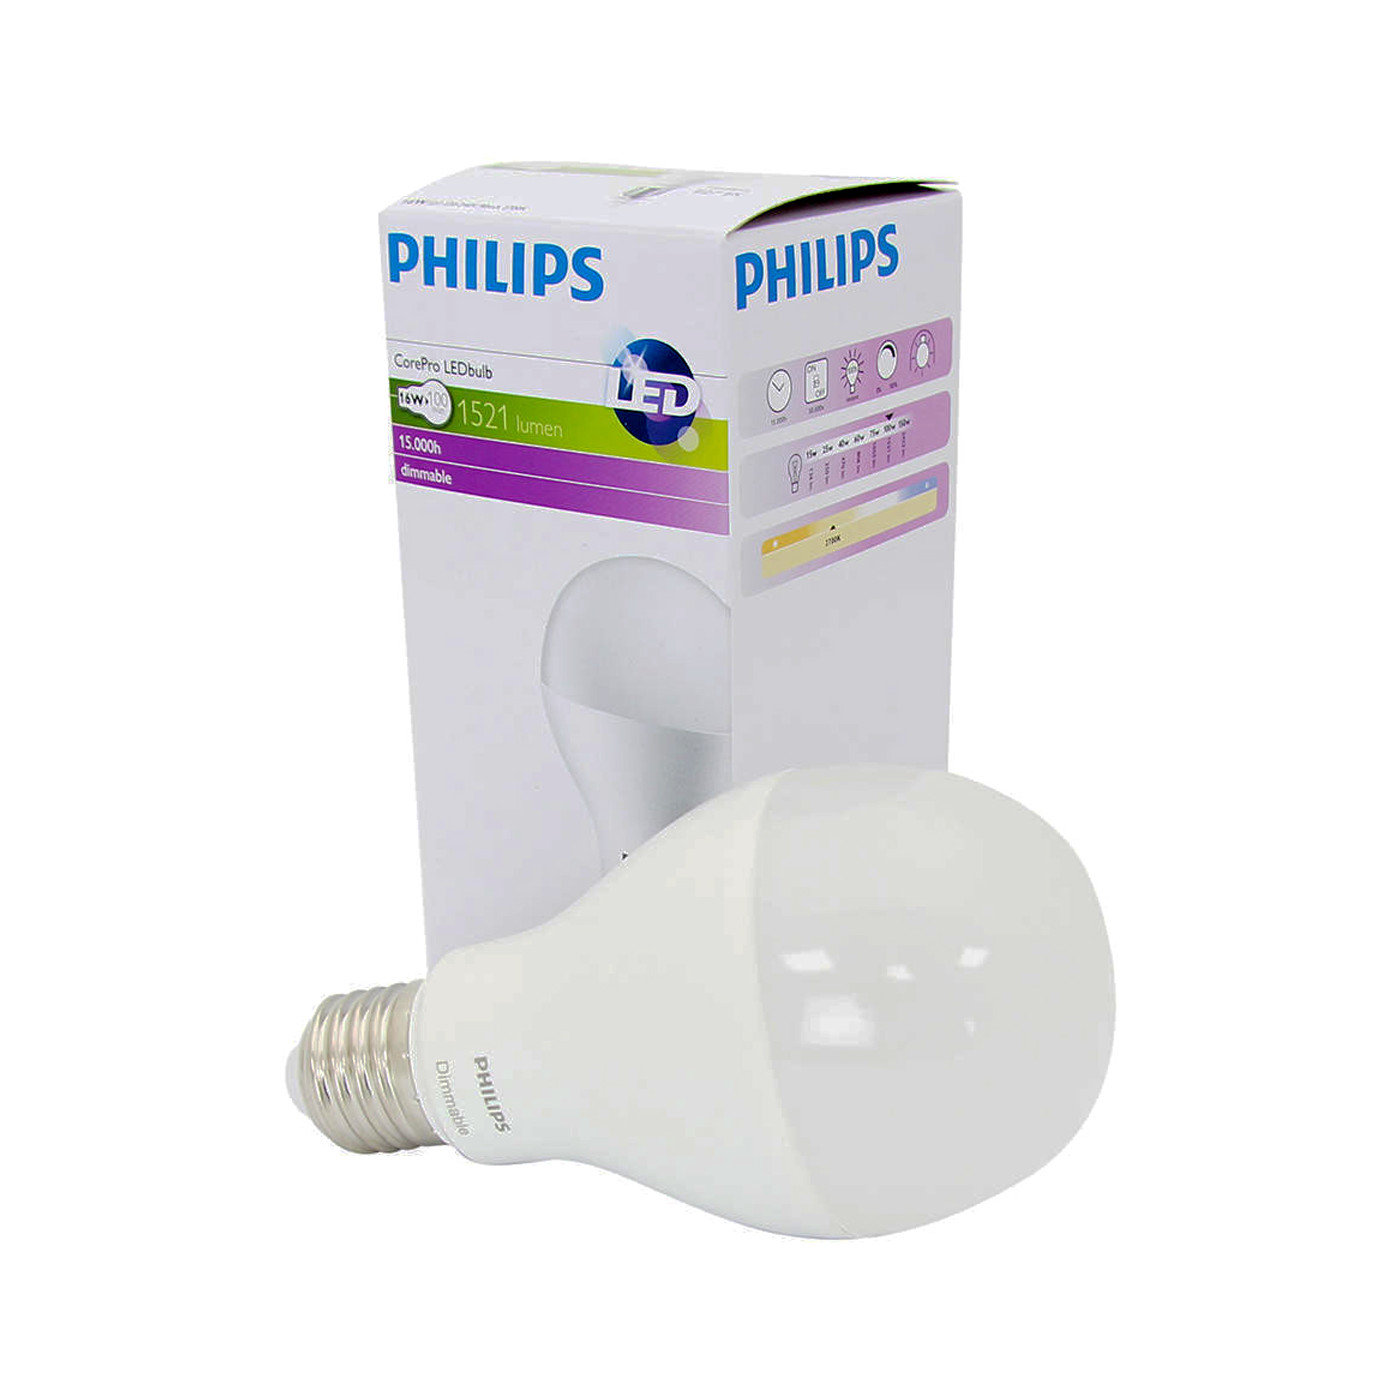 Lampadina led e27 13 5w dimmerabile corepro philips per for Offerte lampadine a led e 27